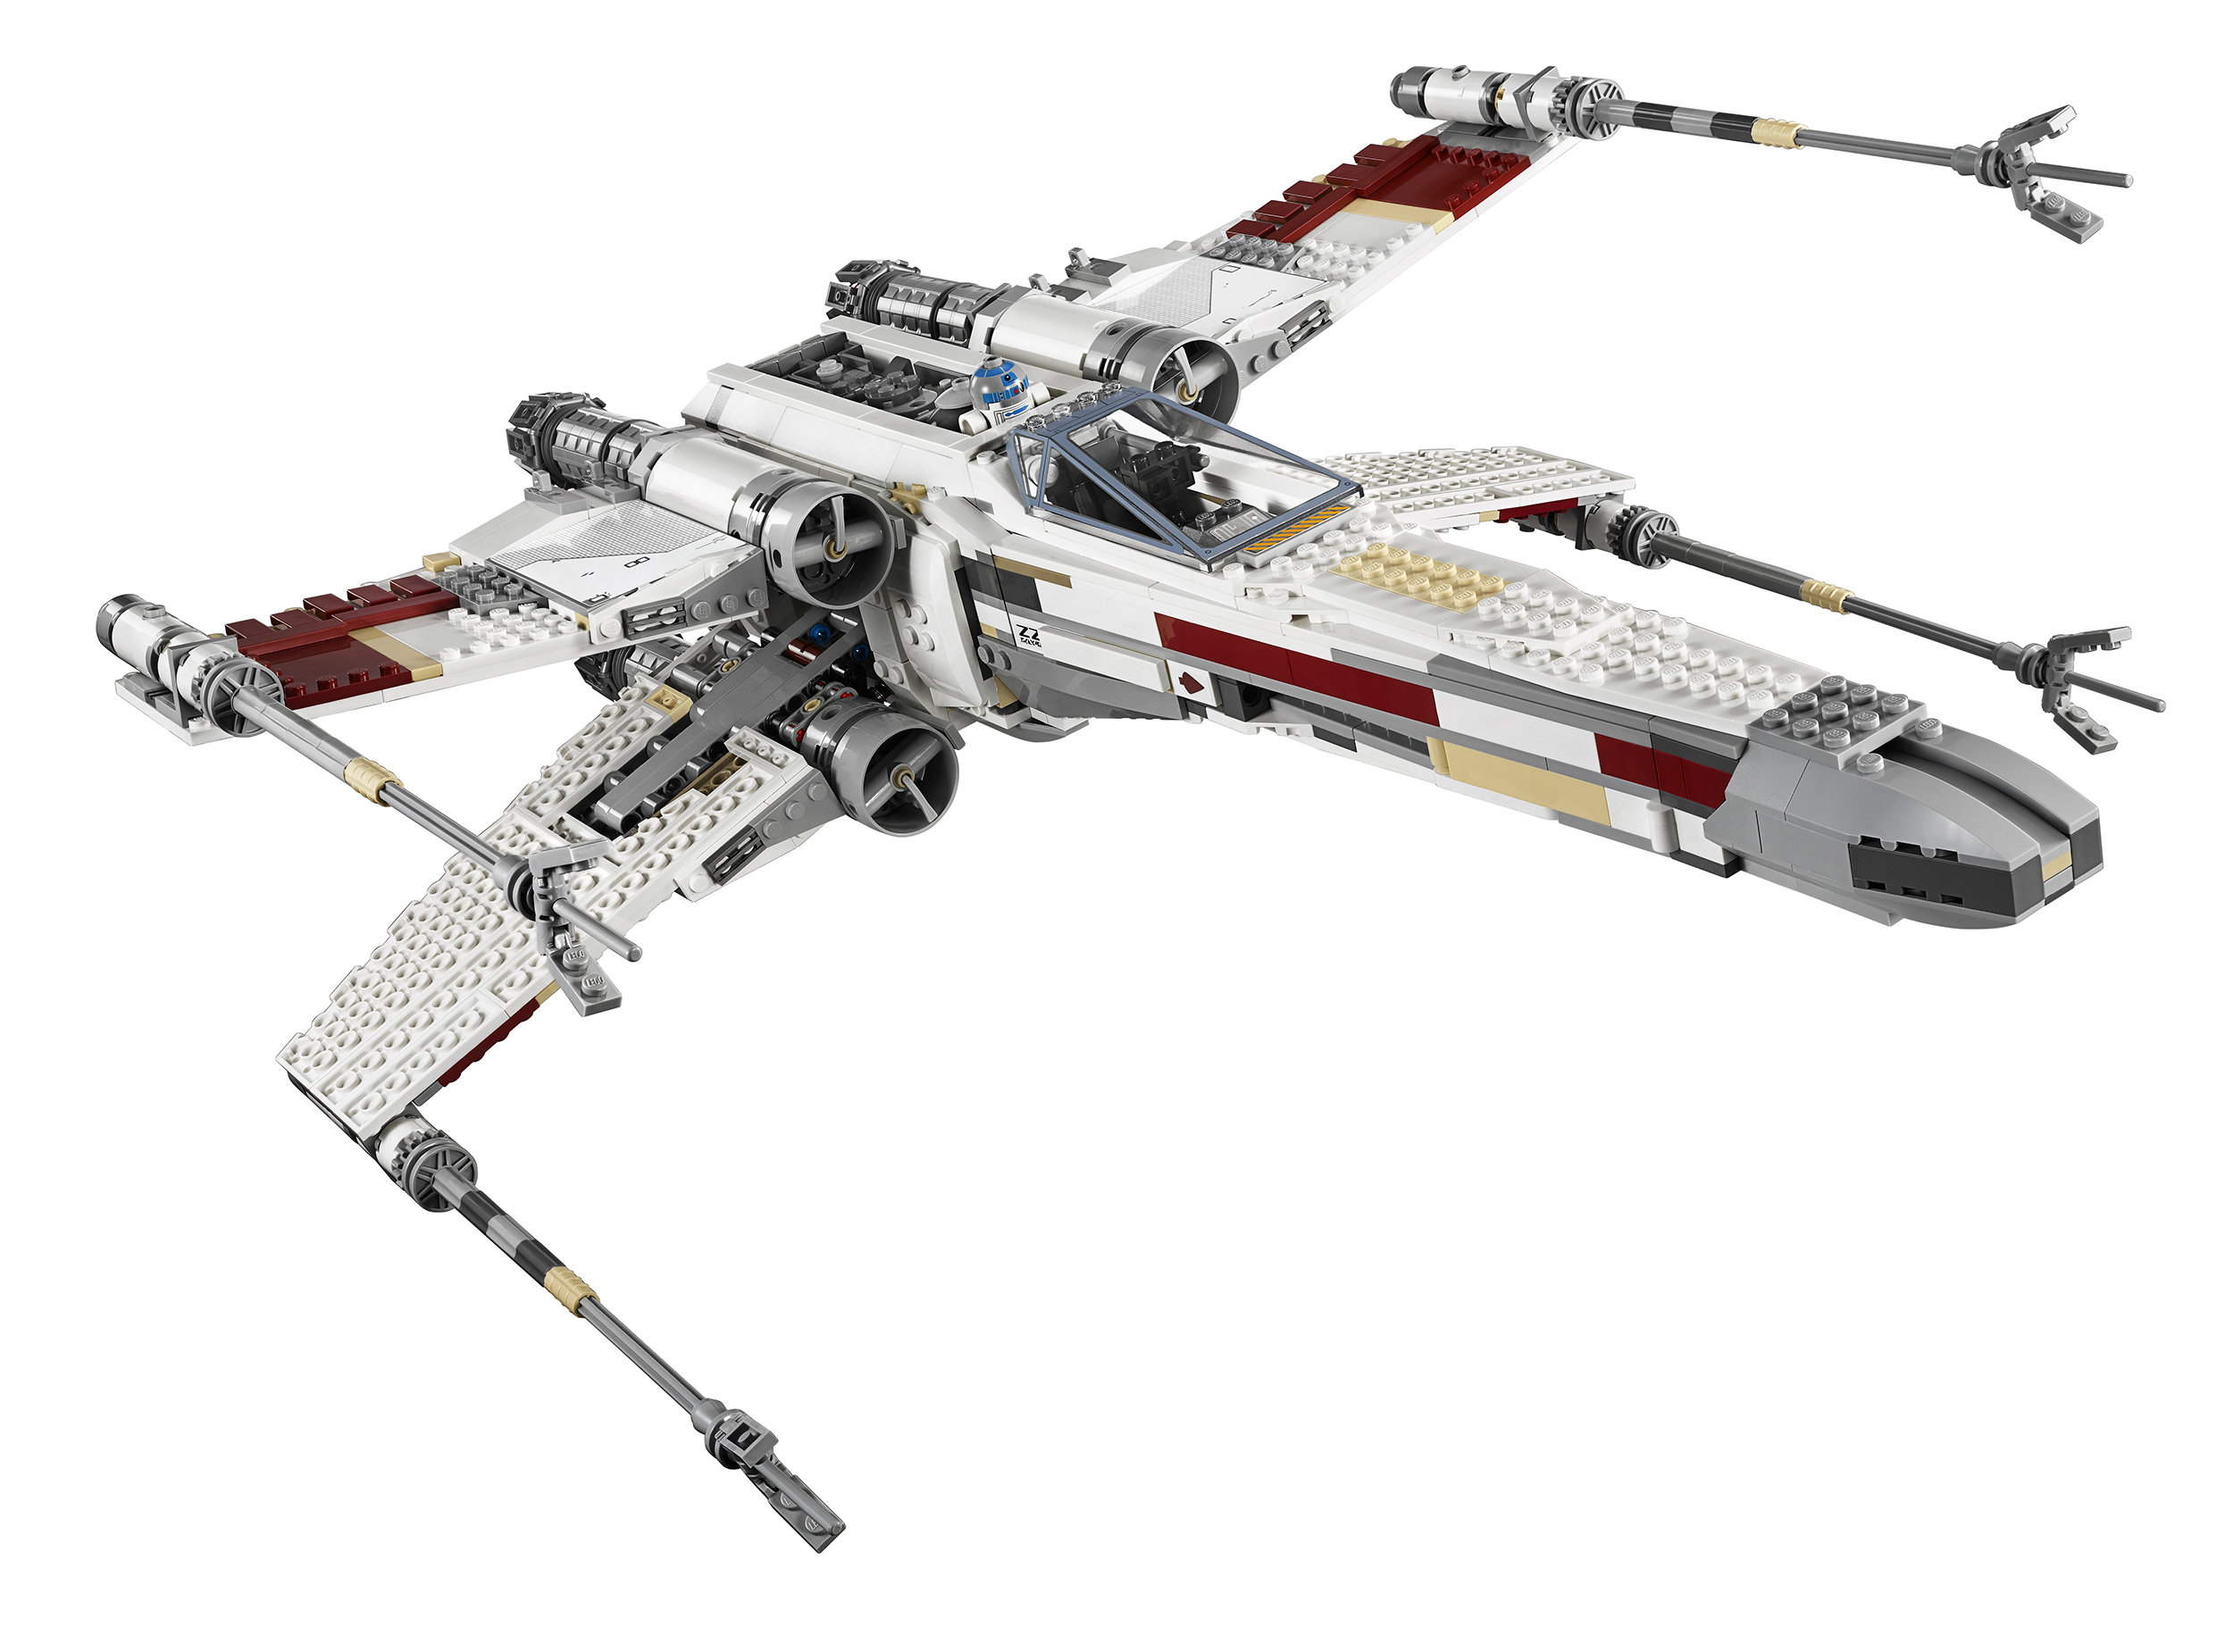 10240 lego star wars ultimate collectors red five x wing starfighter. Black Bedroom Furniture Sets. Home Design Ideas